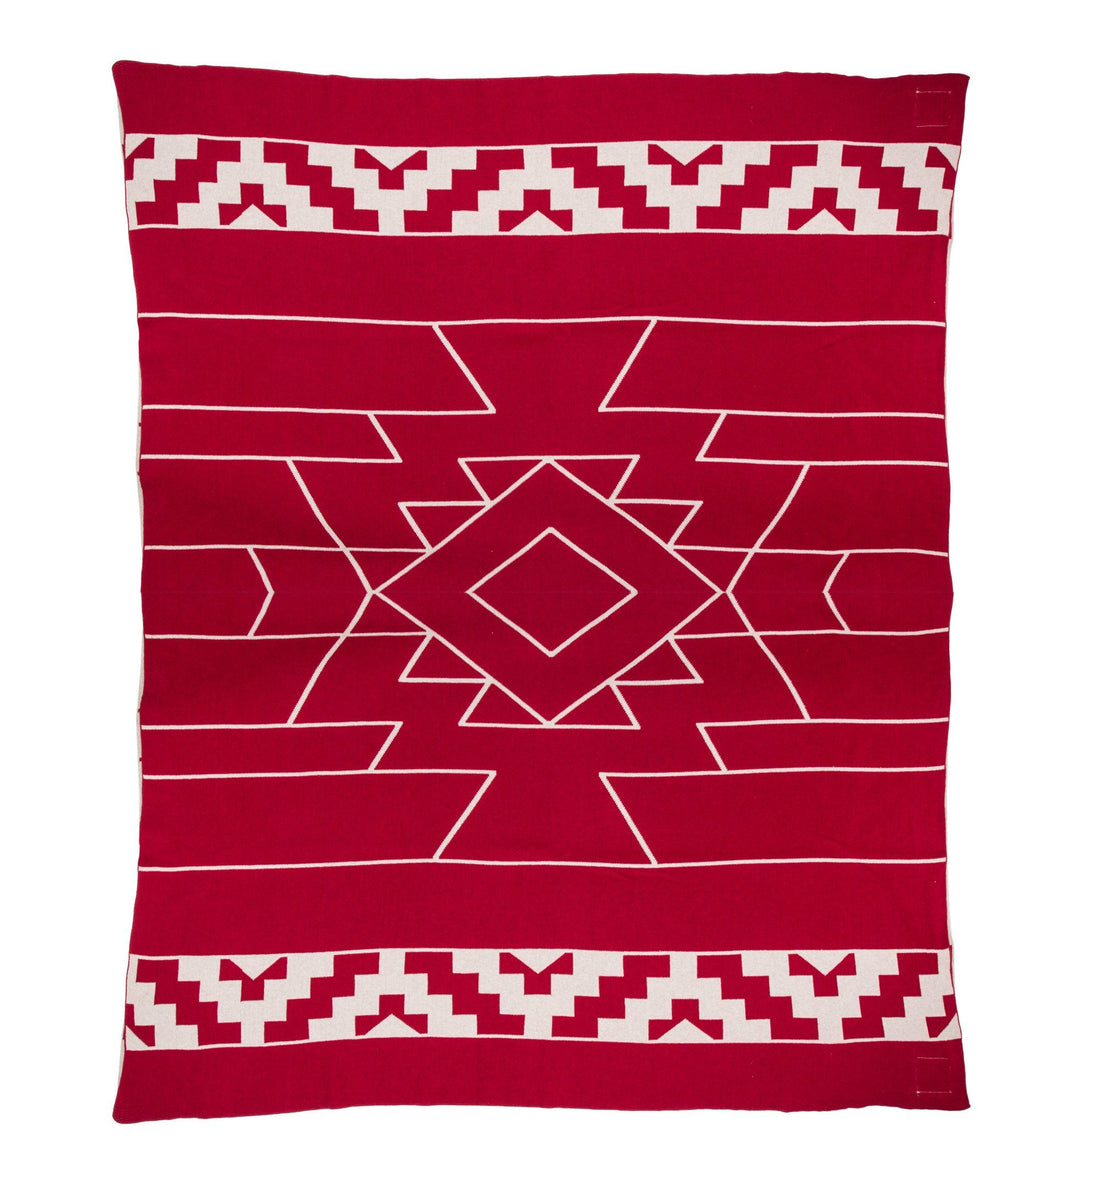 Dakota Blanket, Oxblood - Living Space - Iron and Resin